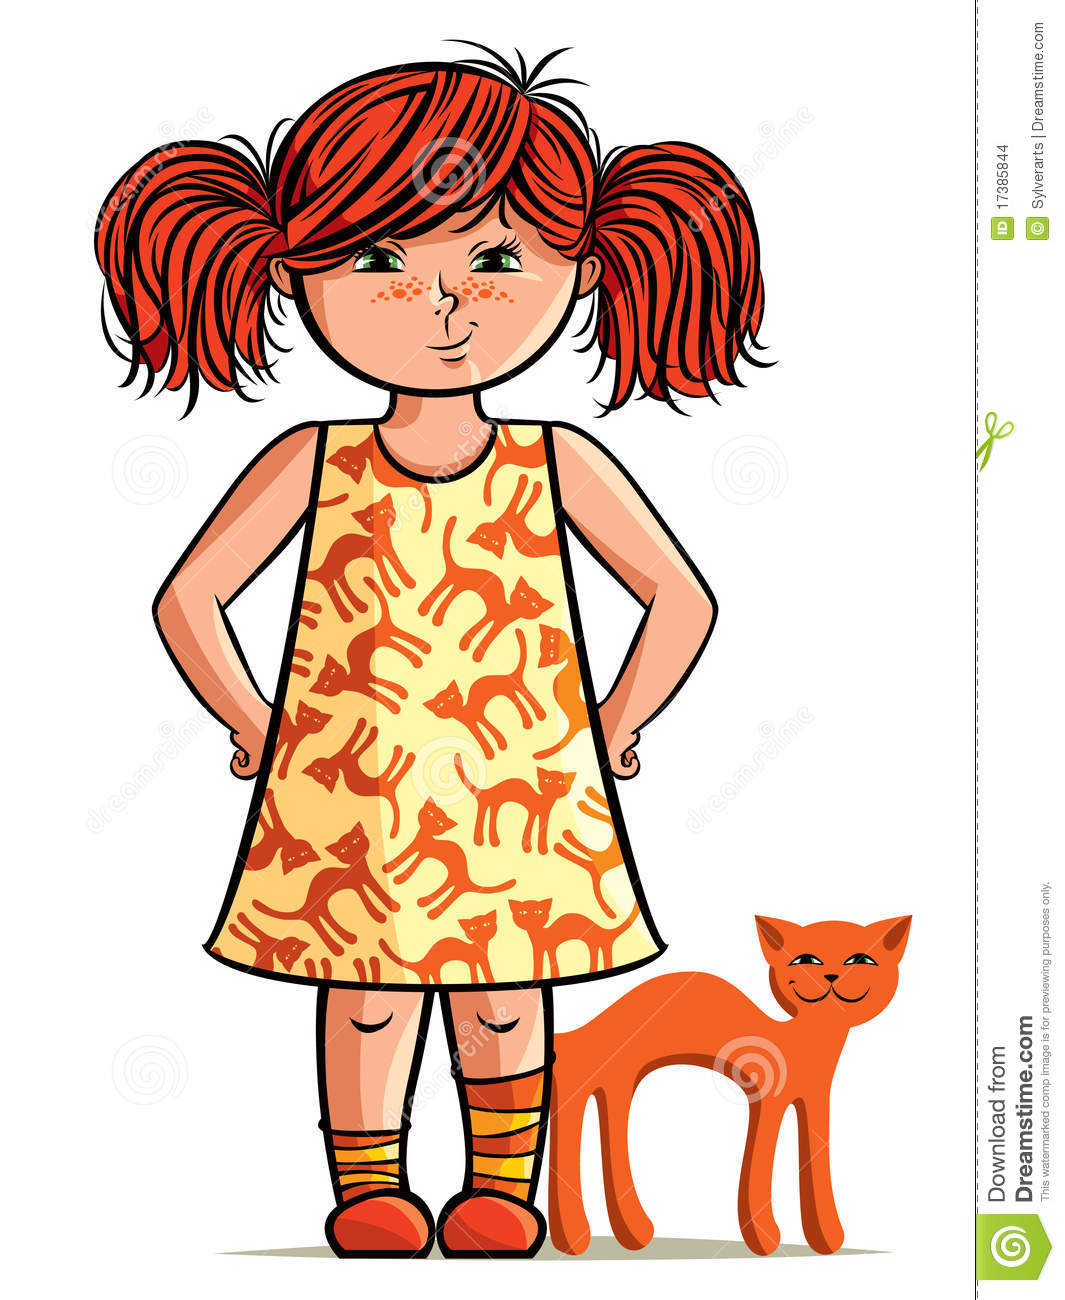 Little Girl with Freckles Clip Art.